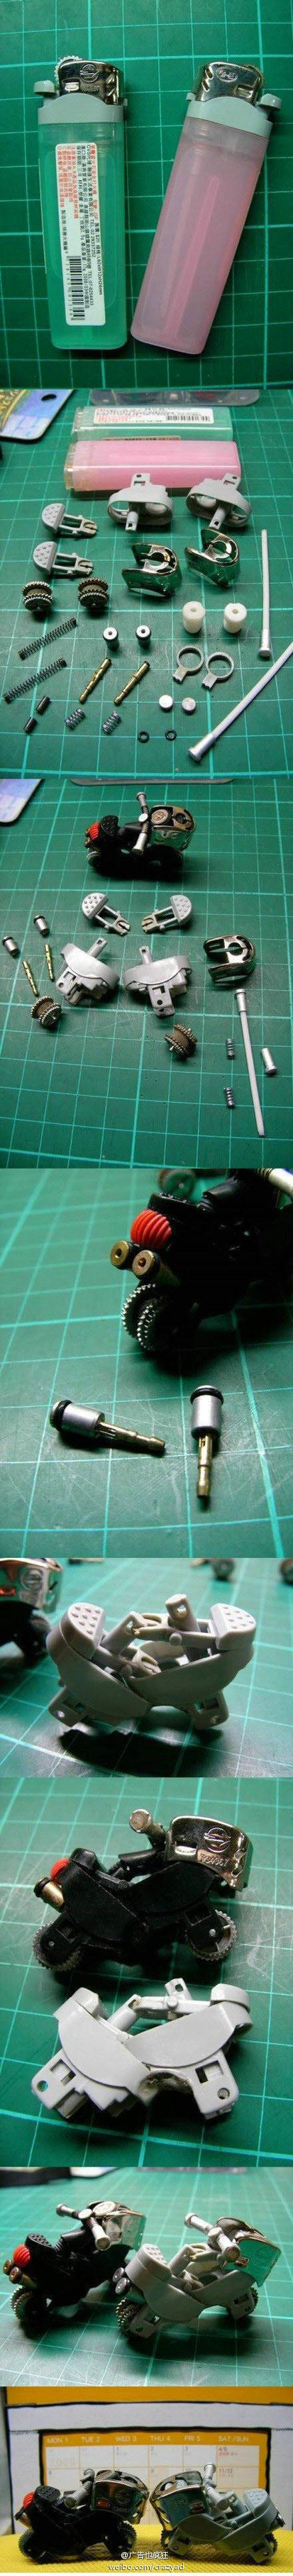 diy, diy projects, diy craft, handmade, diy cool lighter motorcycle